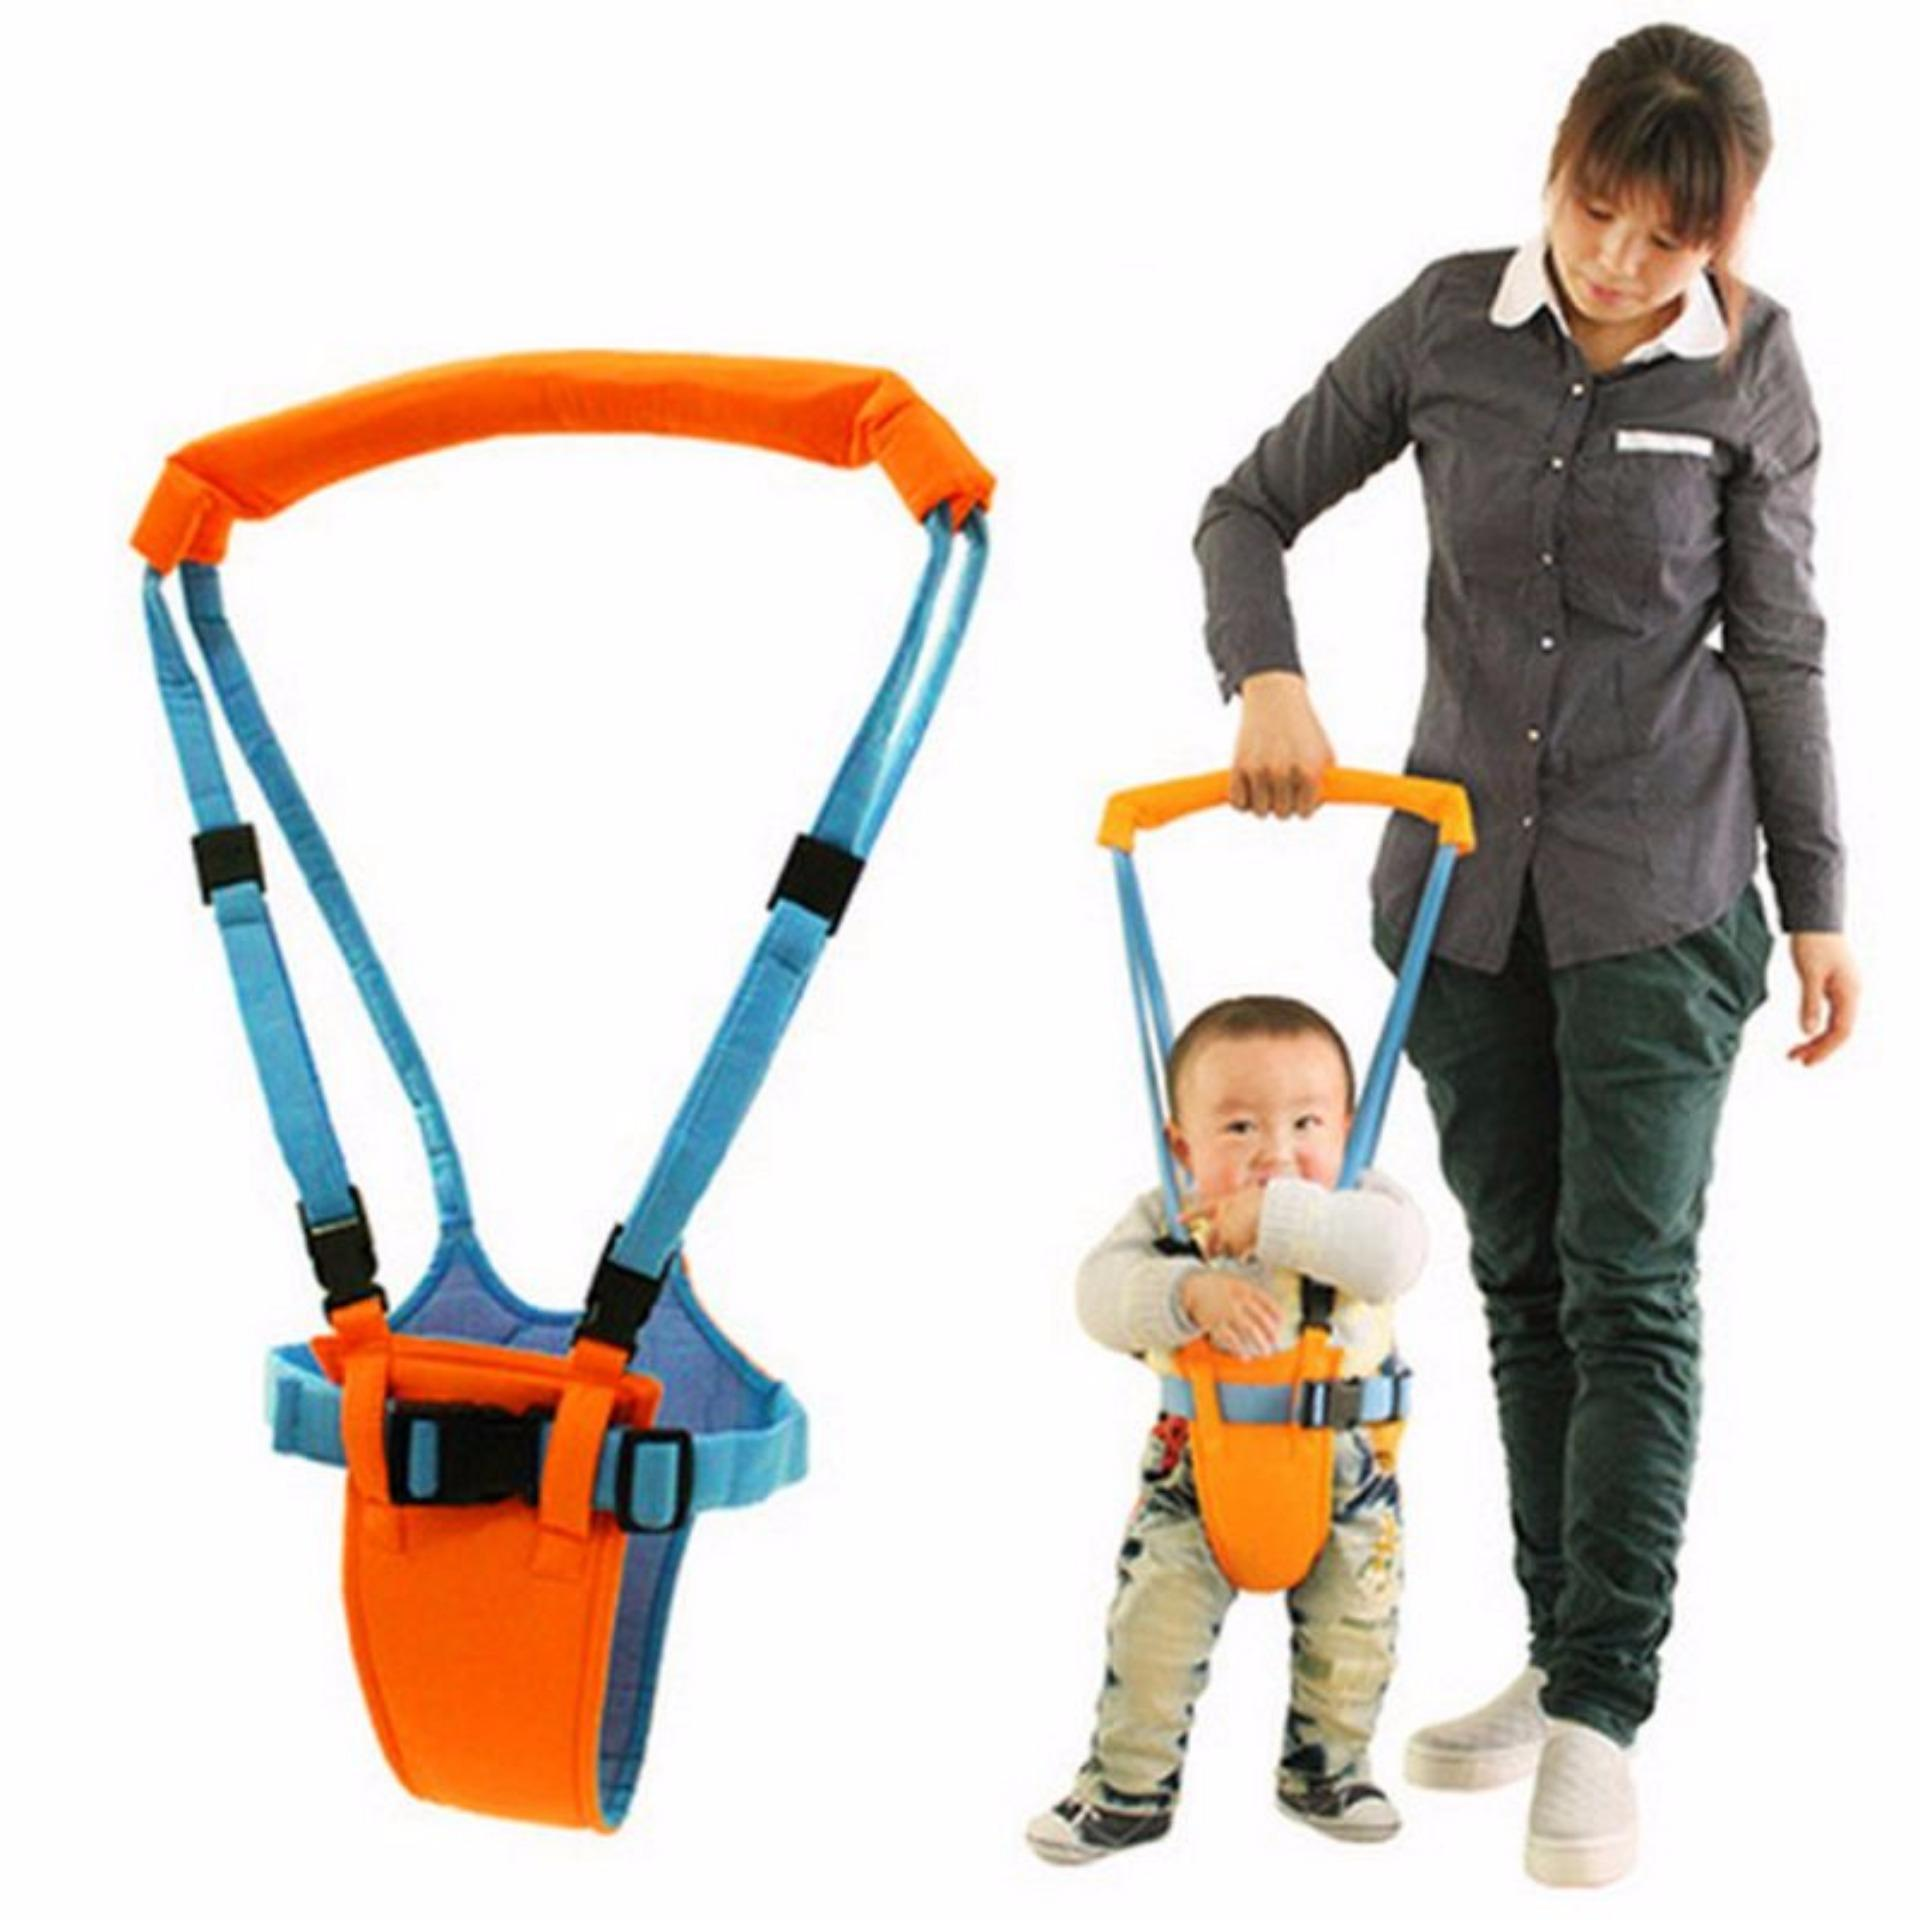 Moonwalk Baby Walking Assistant By I Love Life.